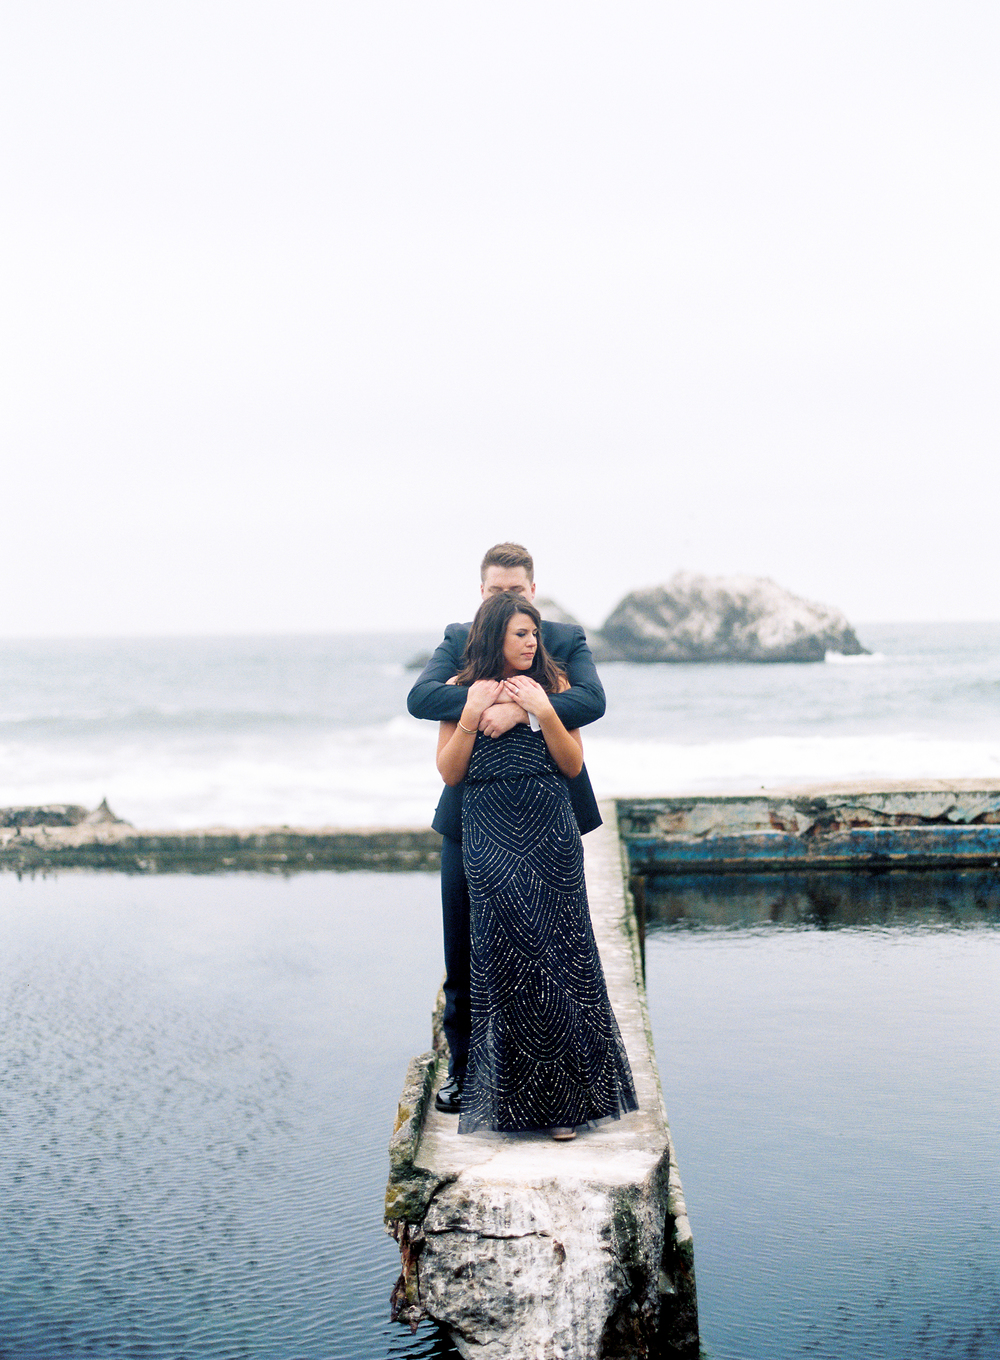 sutro-baths-engagement-50.jpg